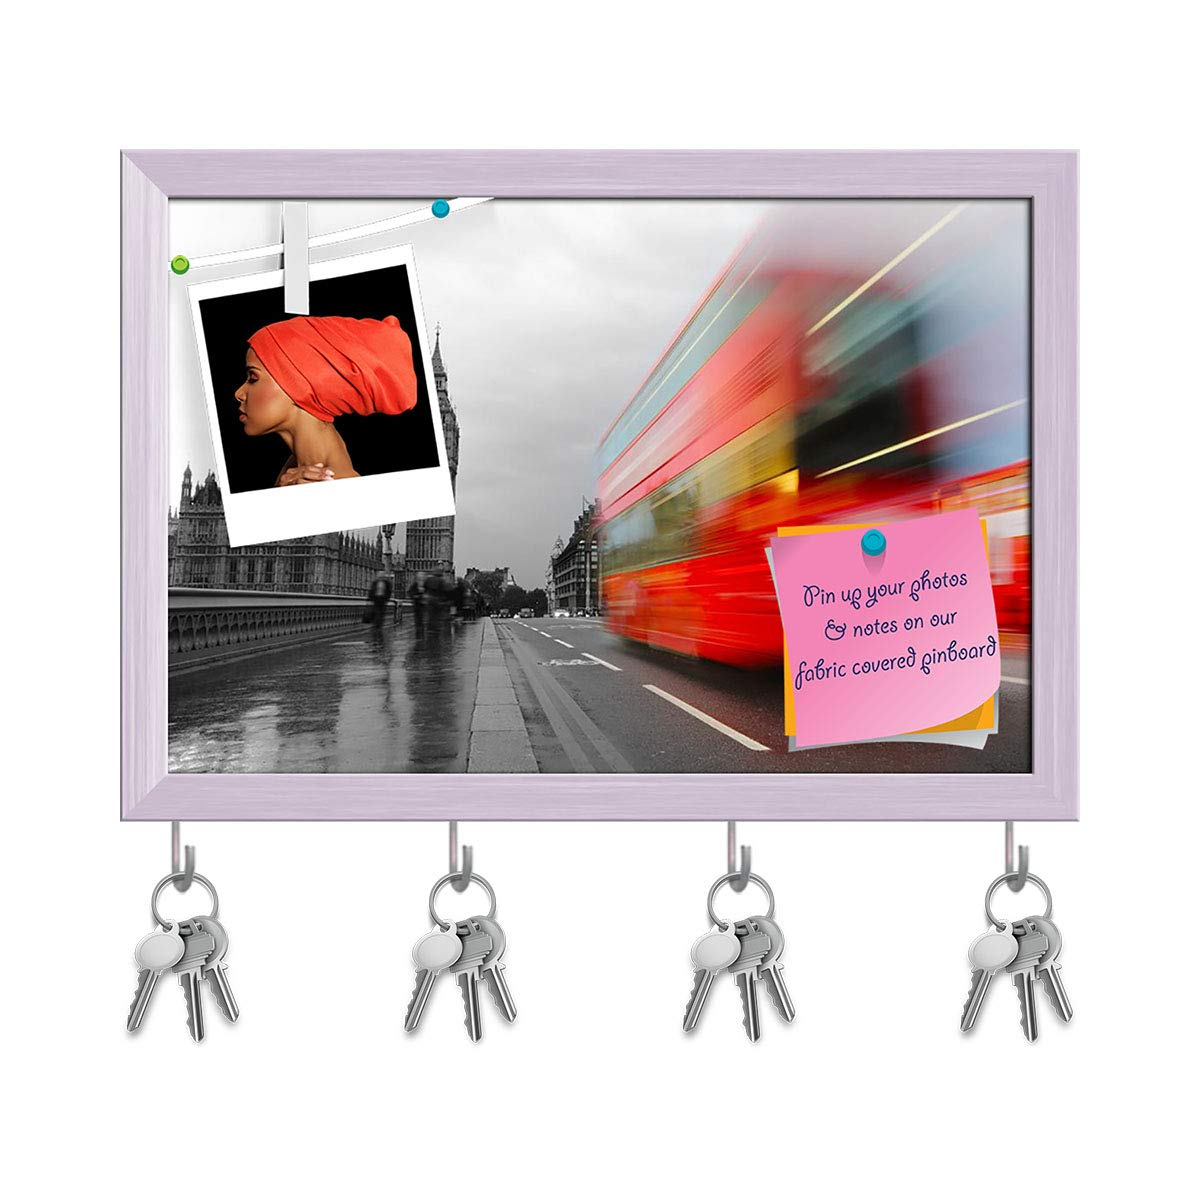 White Frame 11.5inch x 8inch (29.2cms x 20.3cms) Artzfolio Red Bus, Big Ben, Palace of Westminster in London UK Key Holder Hooks   Notice Pin Board   Antique golden Frame 17.5 X 12Inch